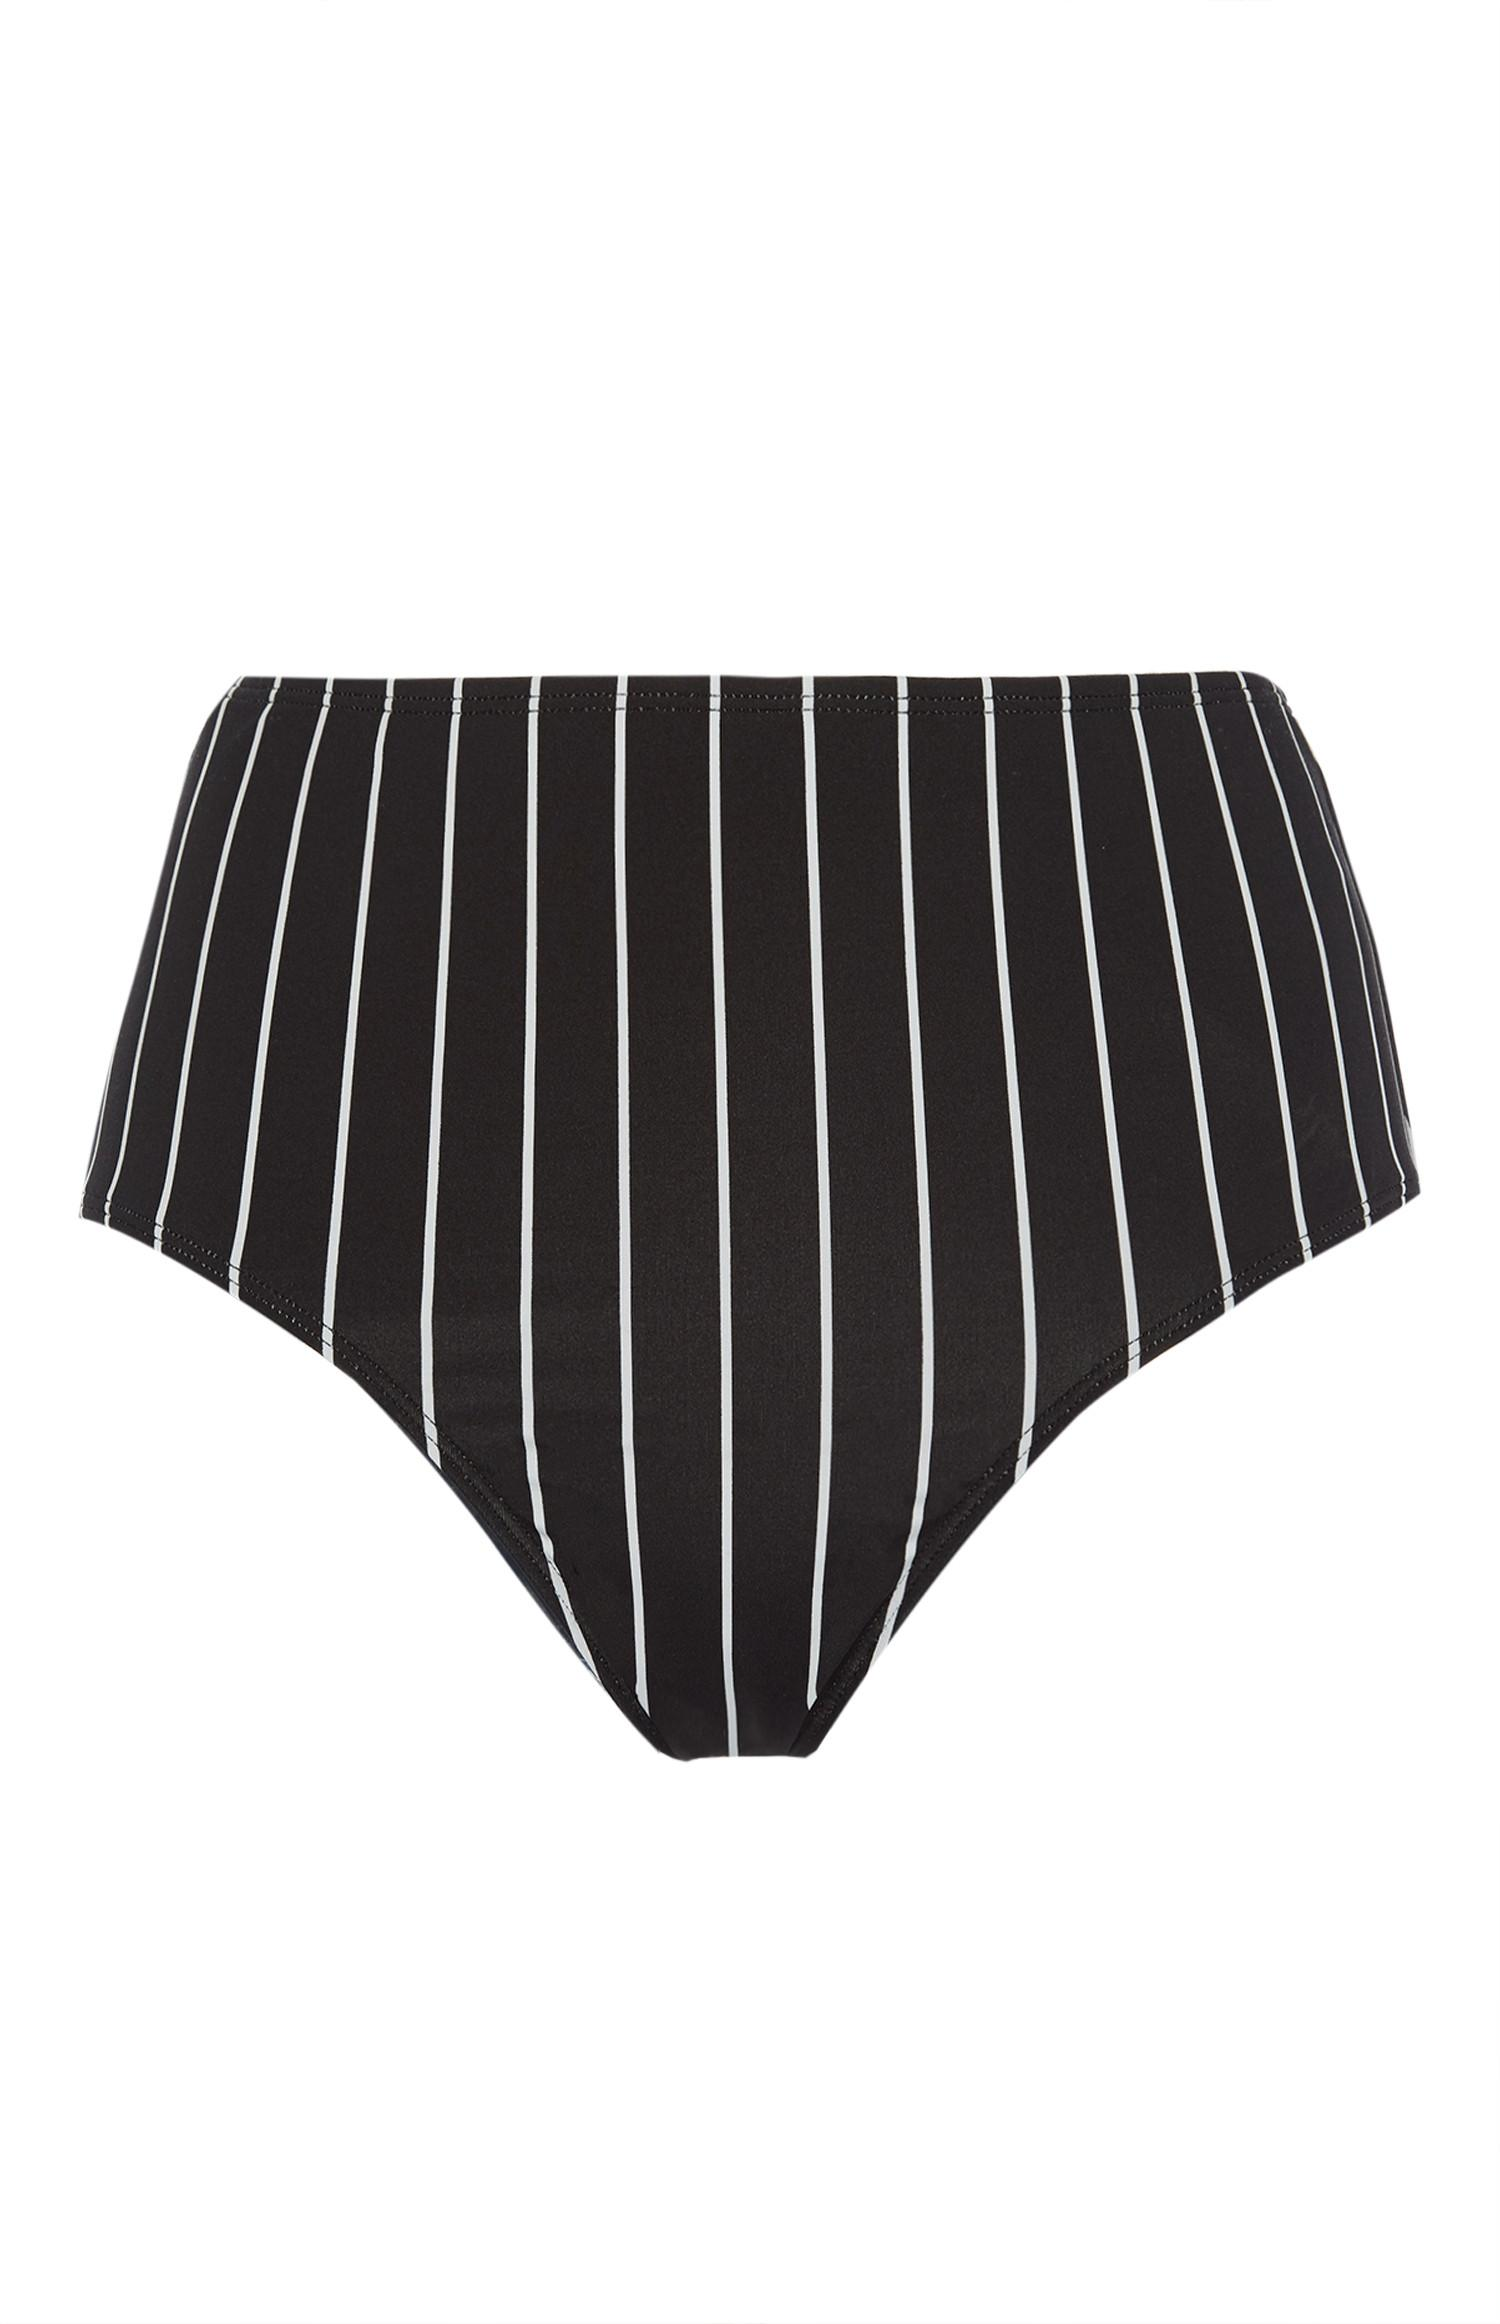 e3fe6f27ad3d3 Striped High Waist Bikini Bottoms | Swimwear & Beachwear ...